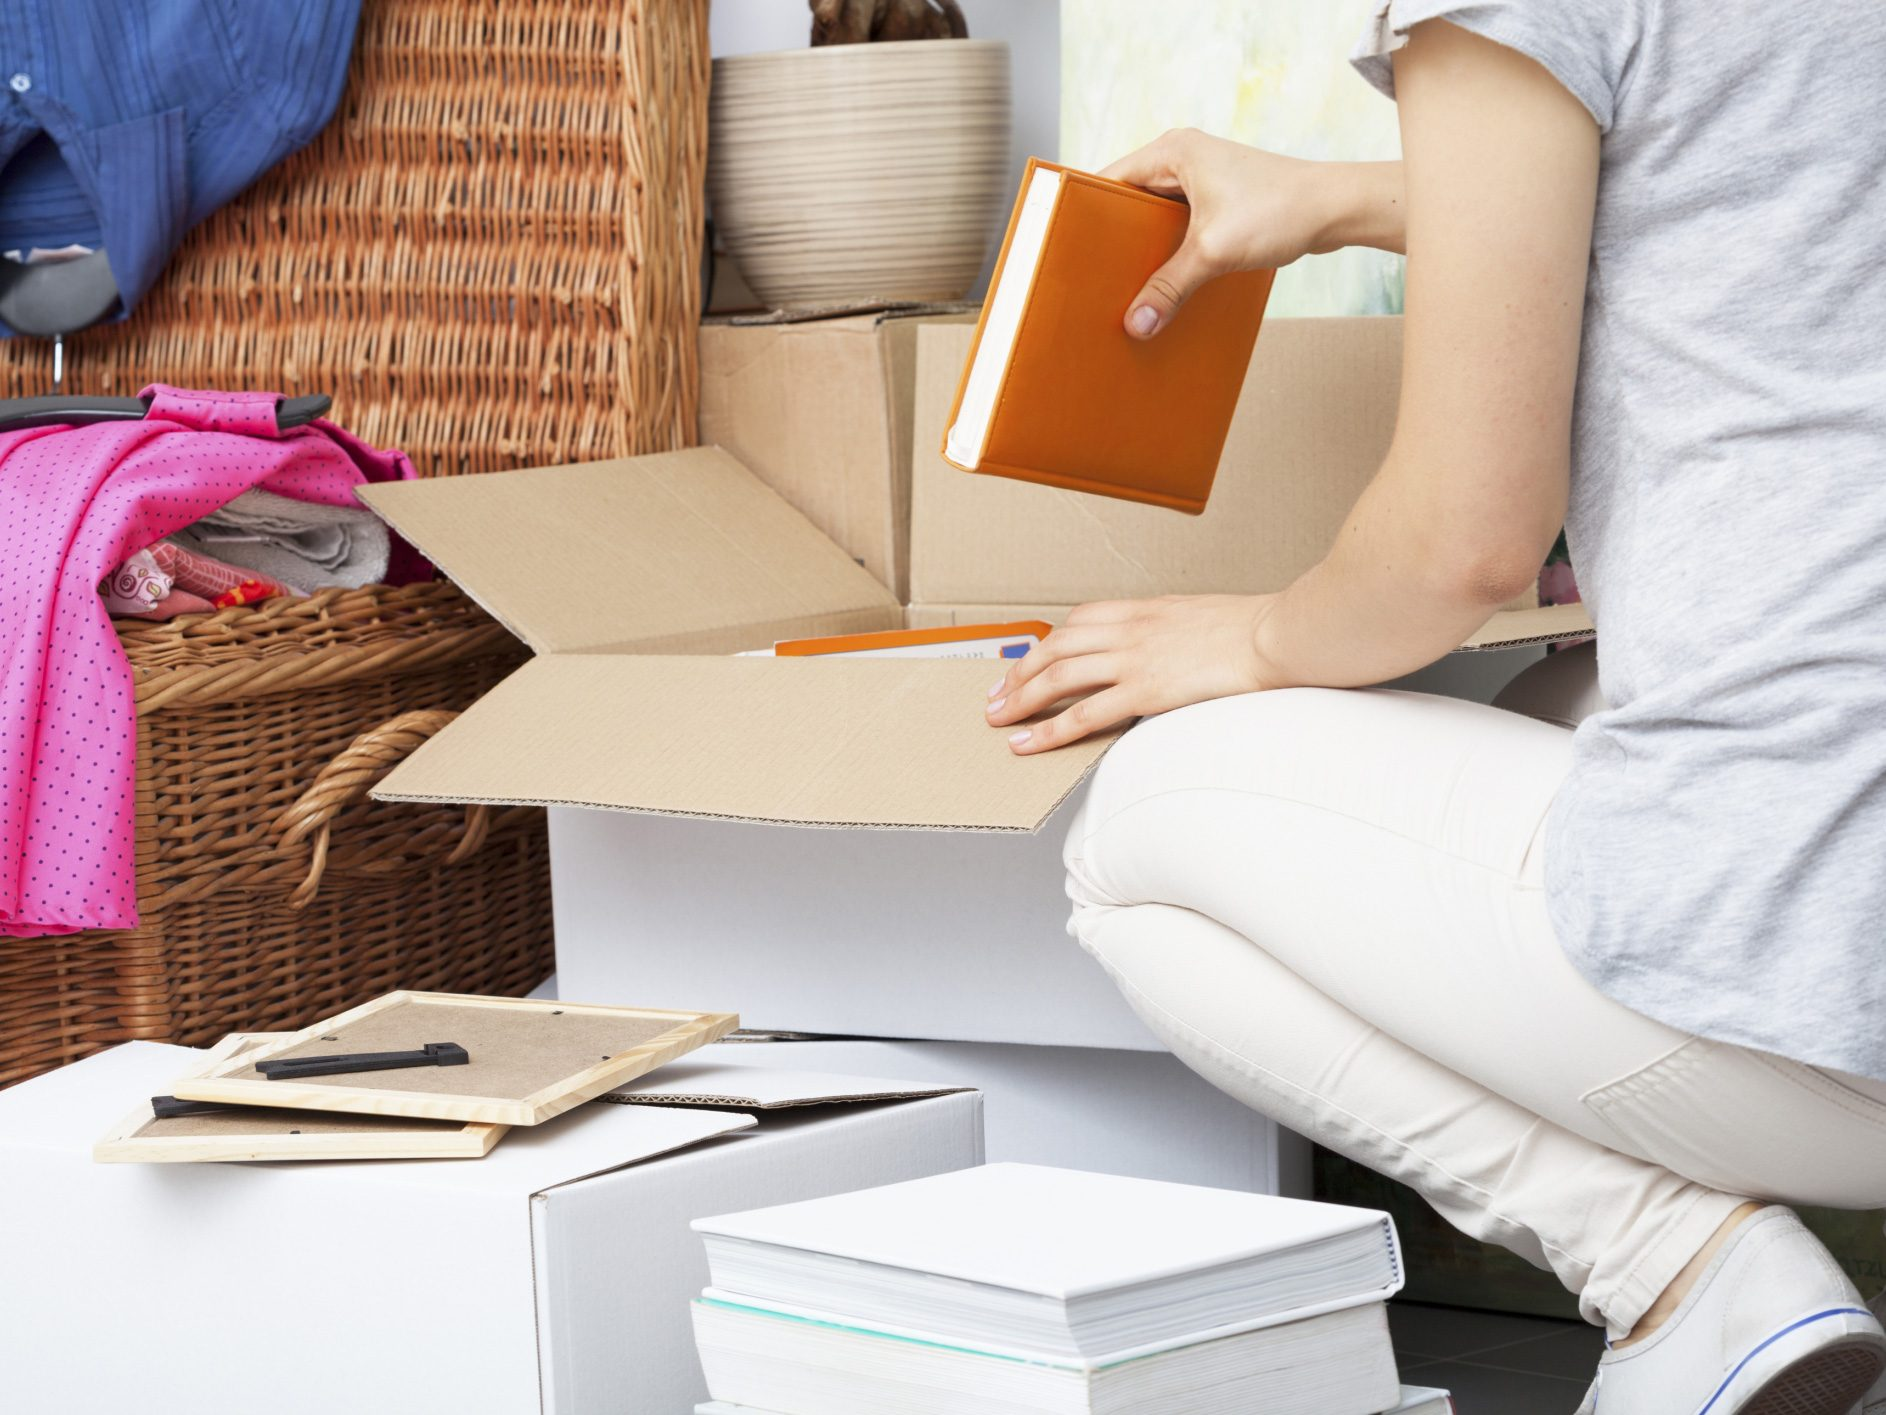 8 Strategies for Downsizing to a Smaller House